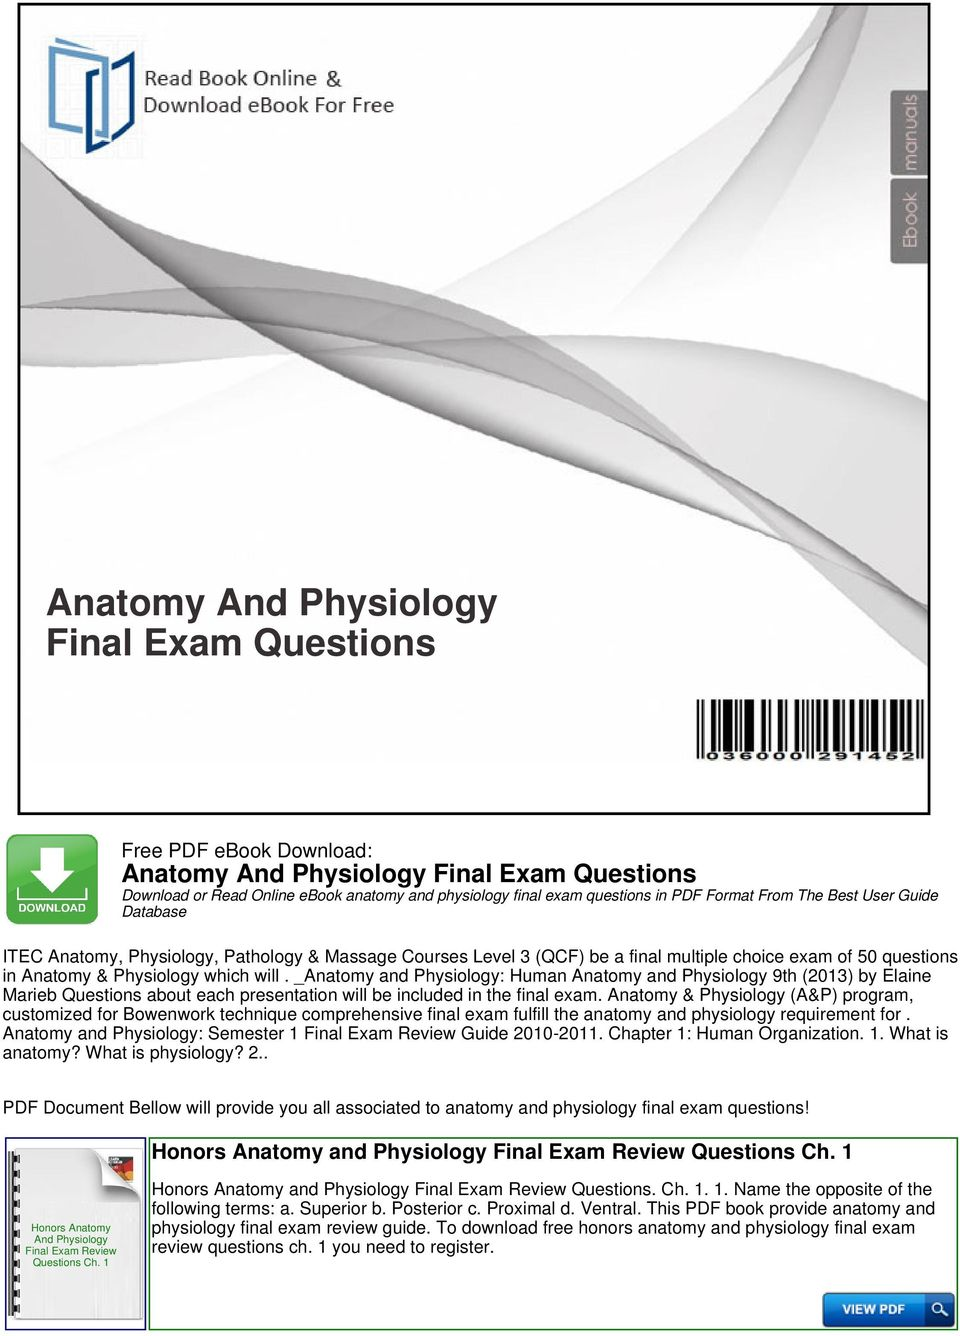 Charmant Anatomy And Physiology 1 Final Exam Pdf Bilder ...